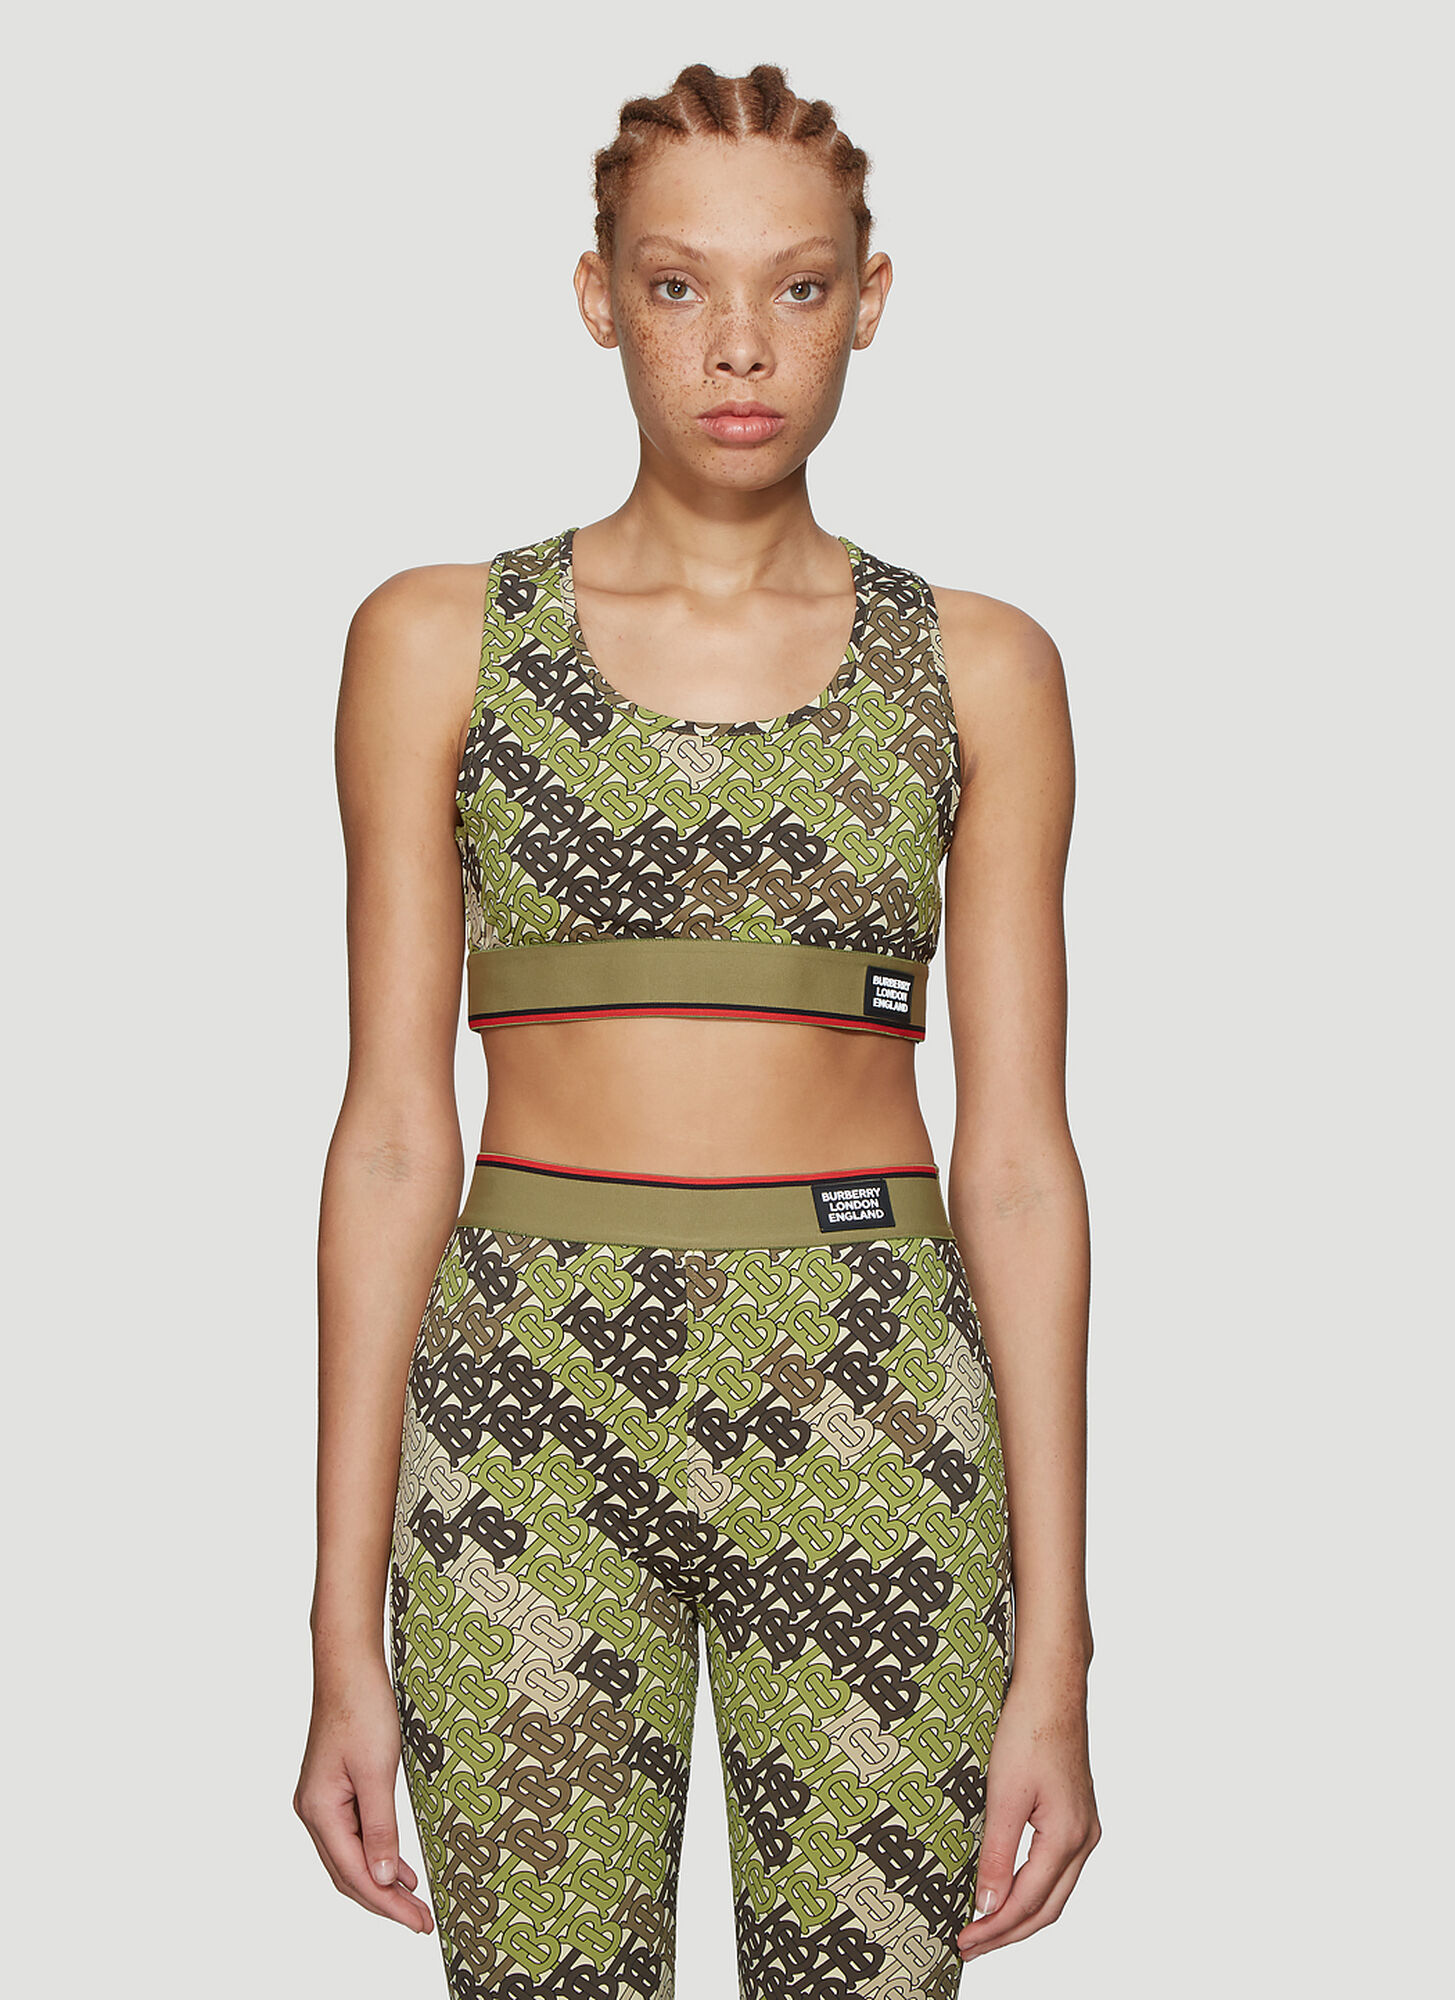 Burberry Monogram Cropped Top in Green